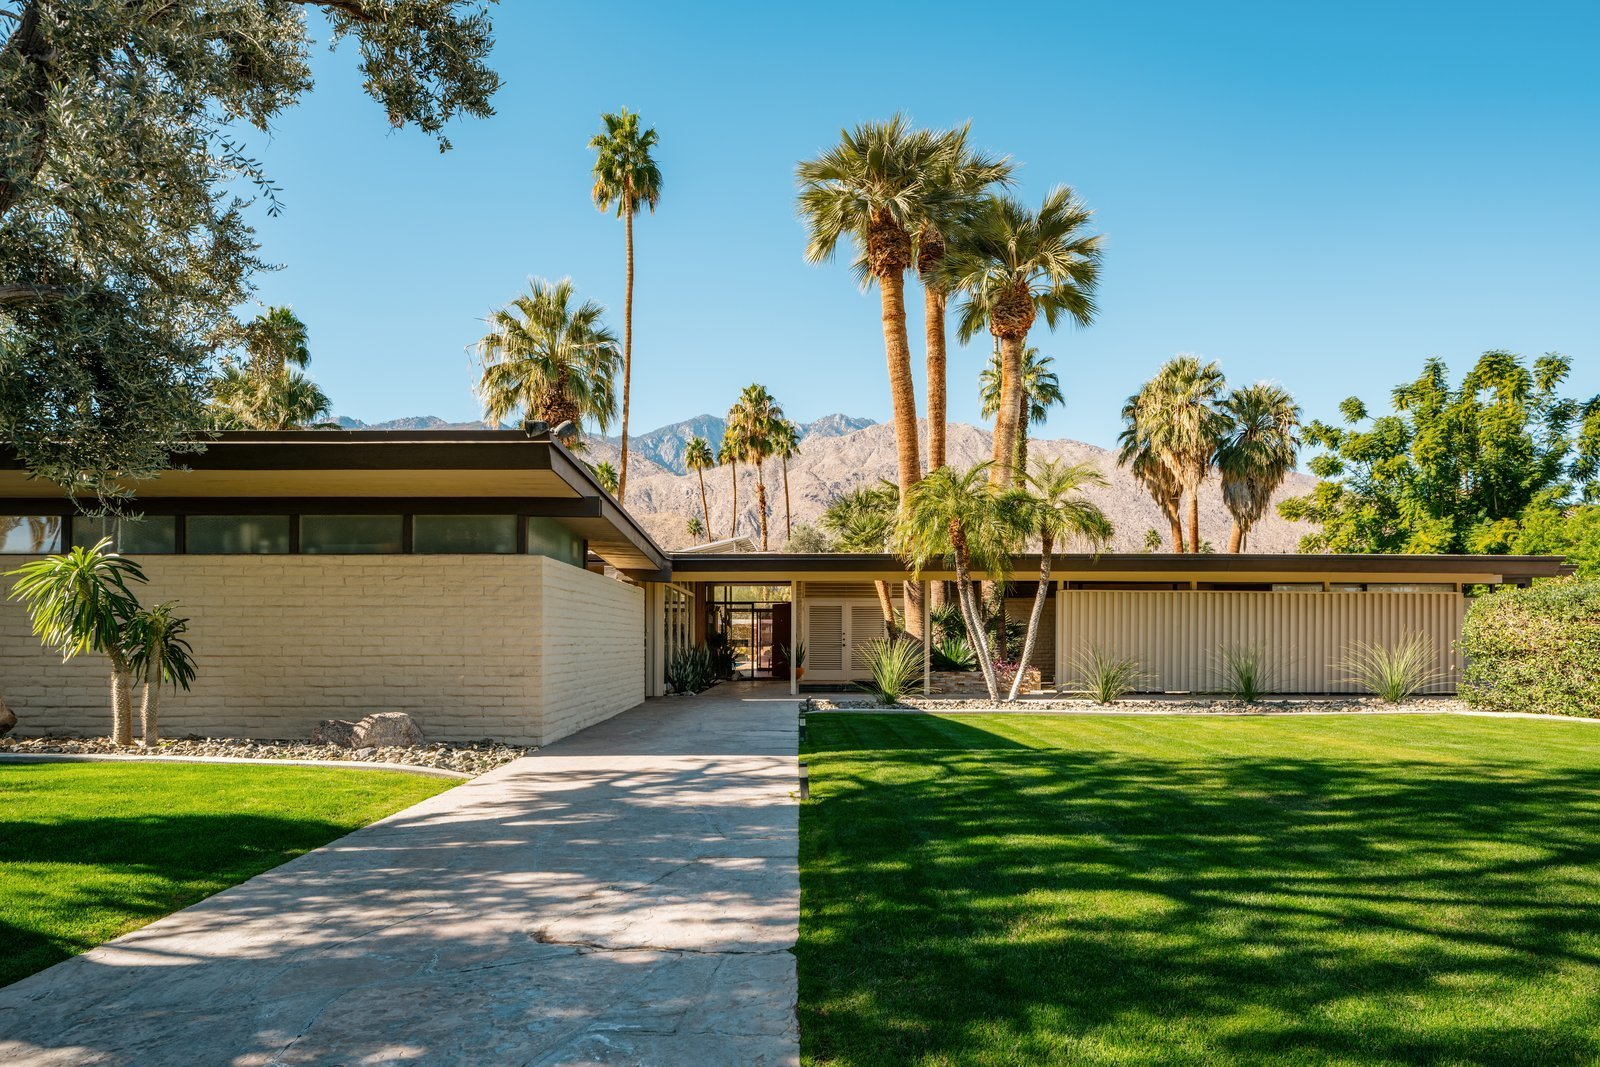 Exterior, Brick Siding Material, Mid-Century Building Type, Flat RoofLine, and House Building Type A midcentury property in Palm Springs, California.  Photo 1 of 10 in Top 10 Cities to Witness Stunning Architecture Across America